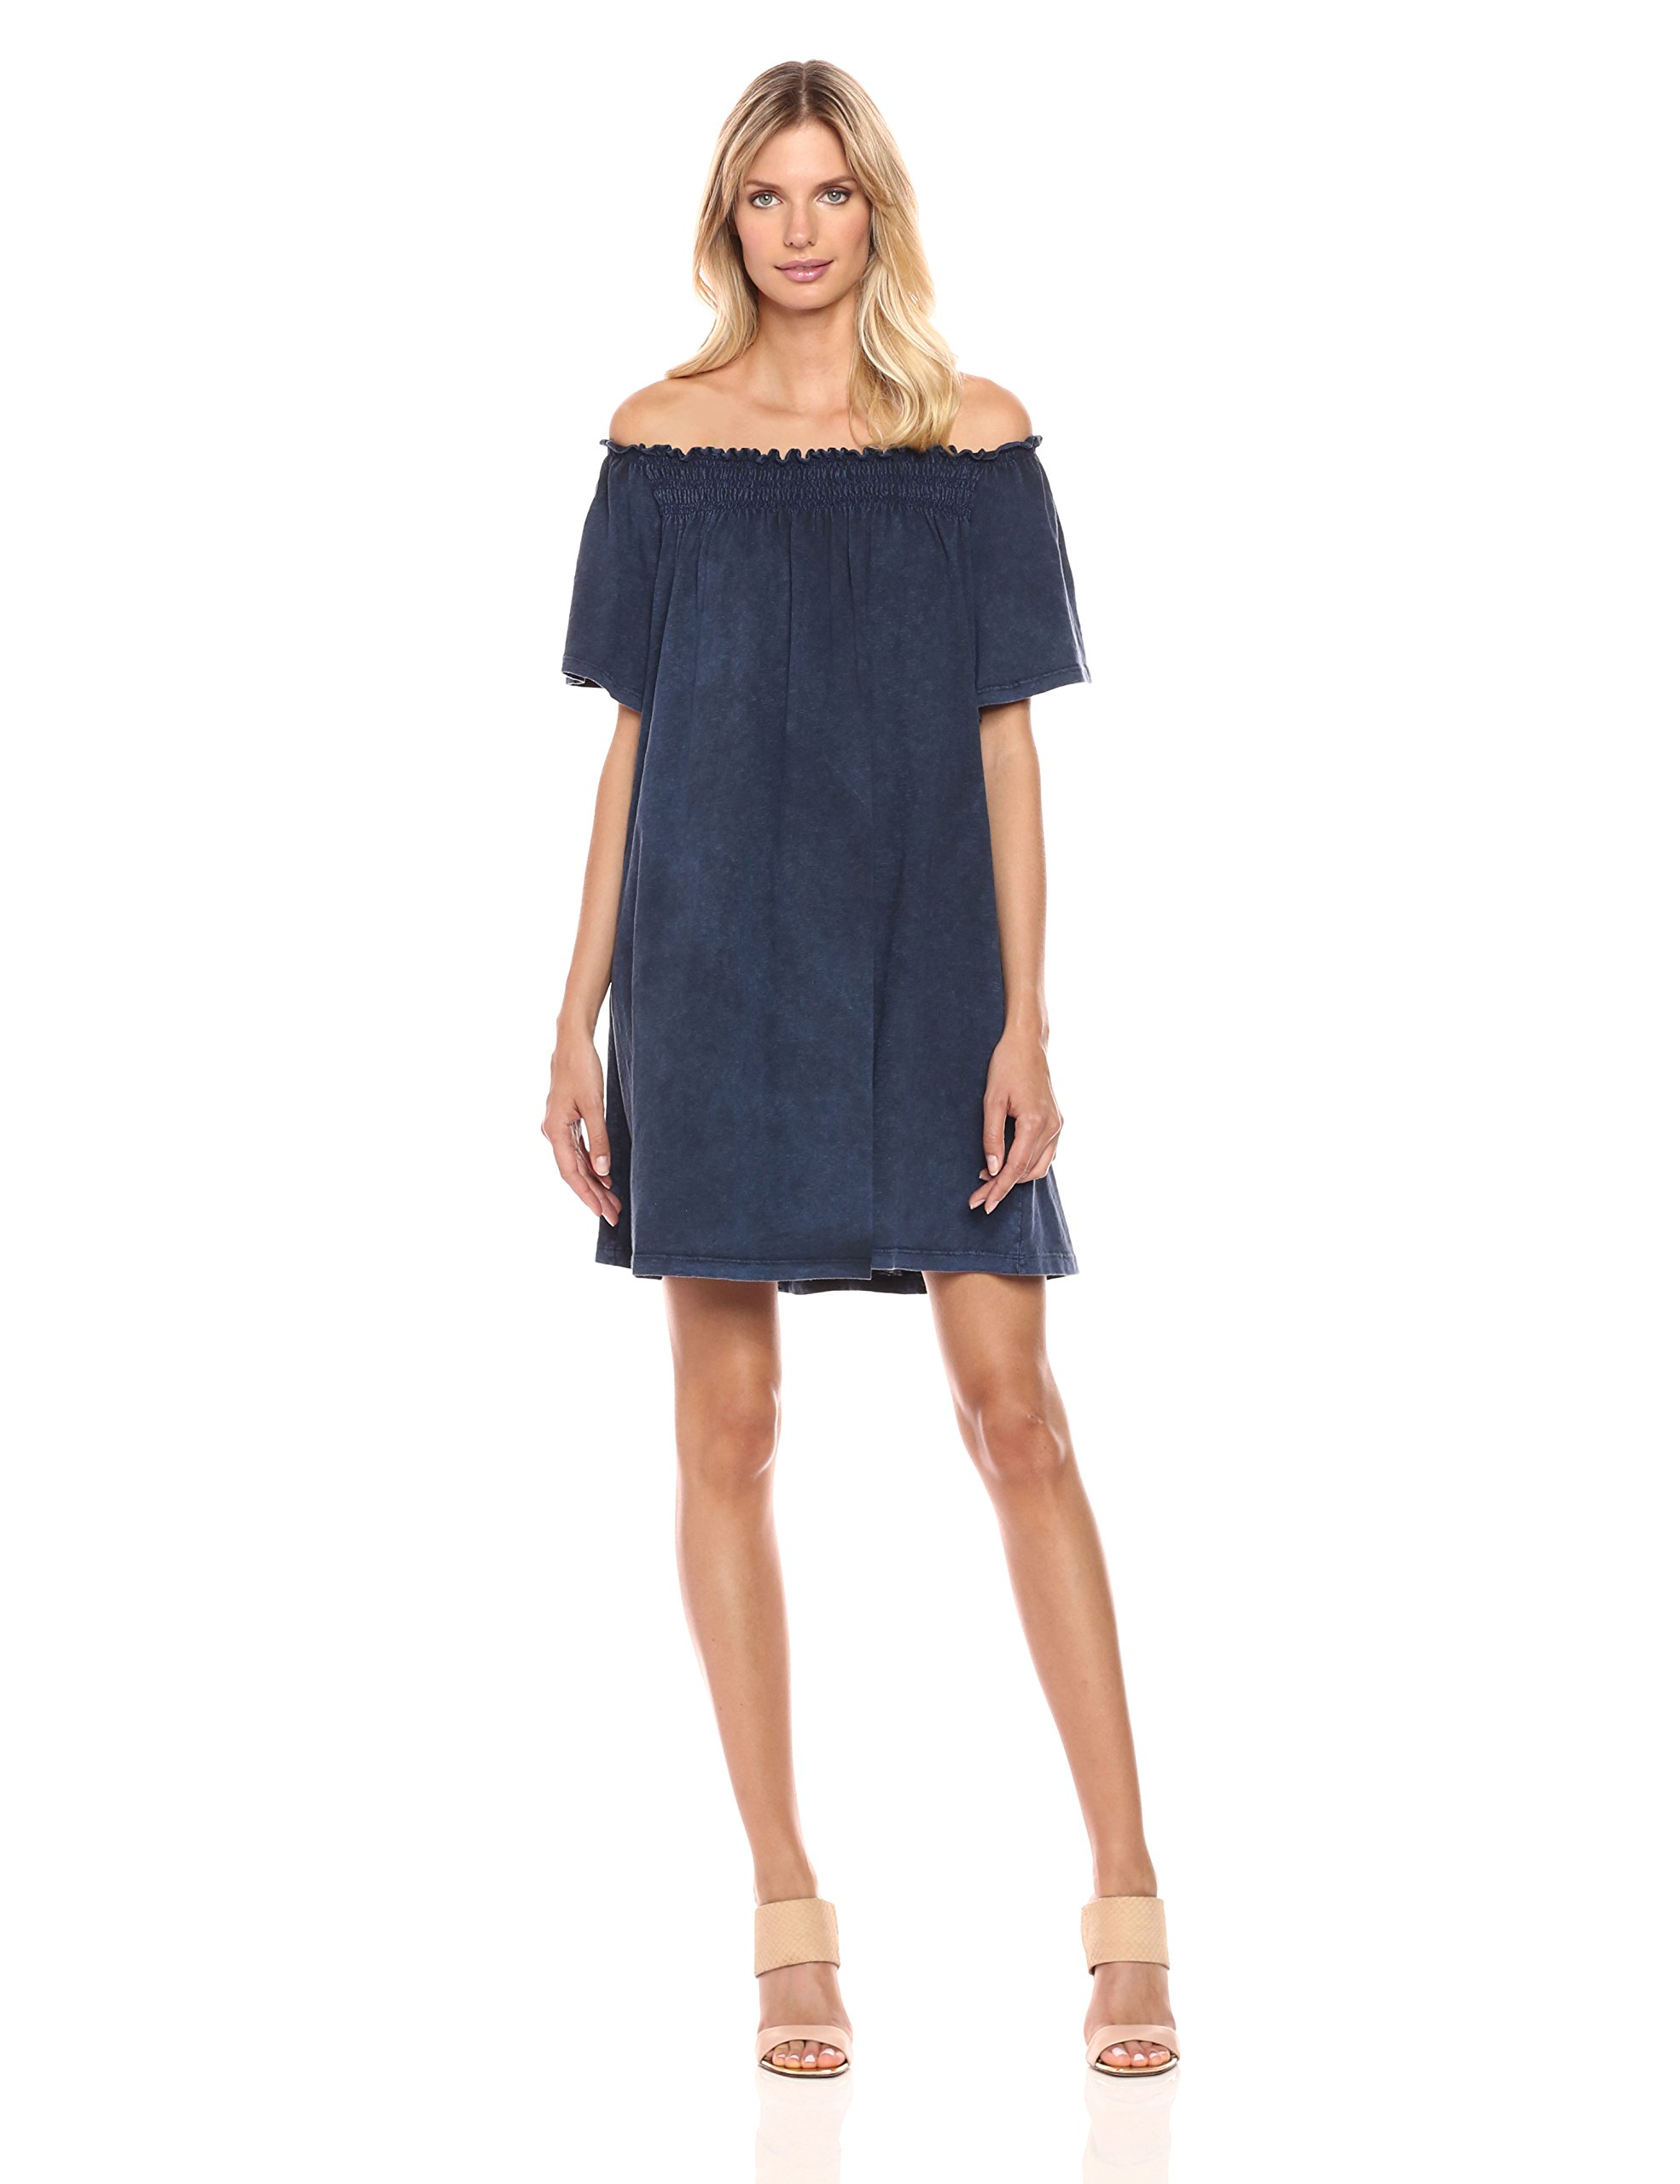 French Connection Women's Chisulo Smocking Jersey Dress, Indigo Wash Look, L